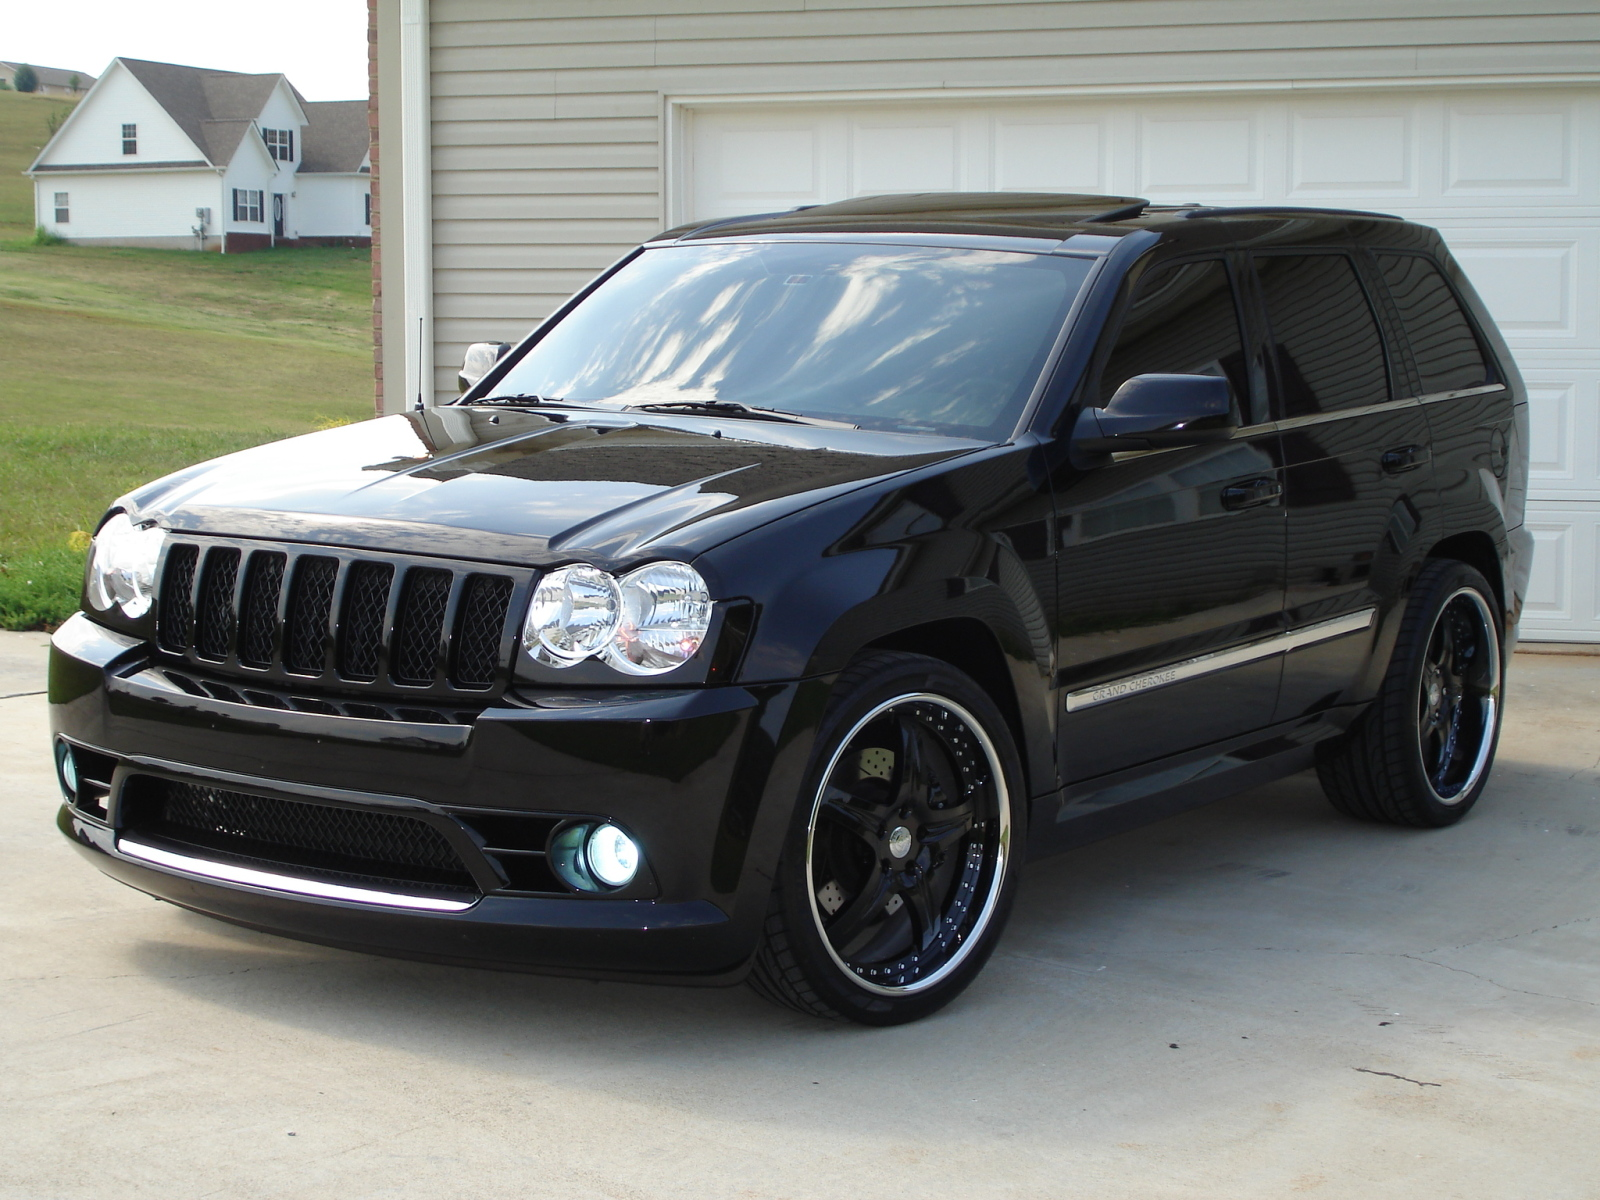 2010 Jeep Grand Cherokee SRT8, 2010 Jeep Grand Cherokee SRT-8 picture,